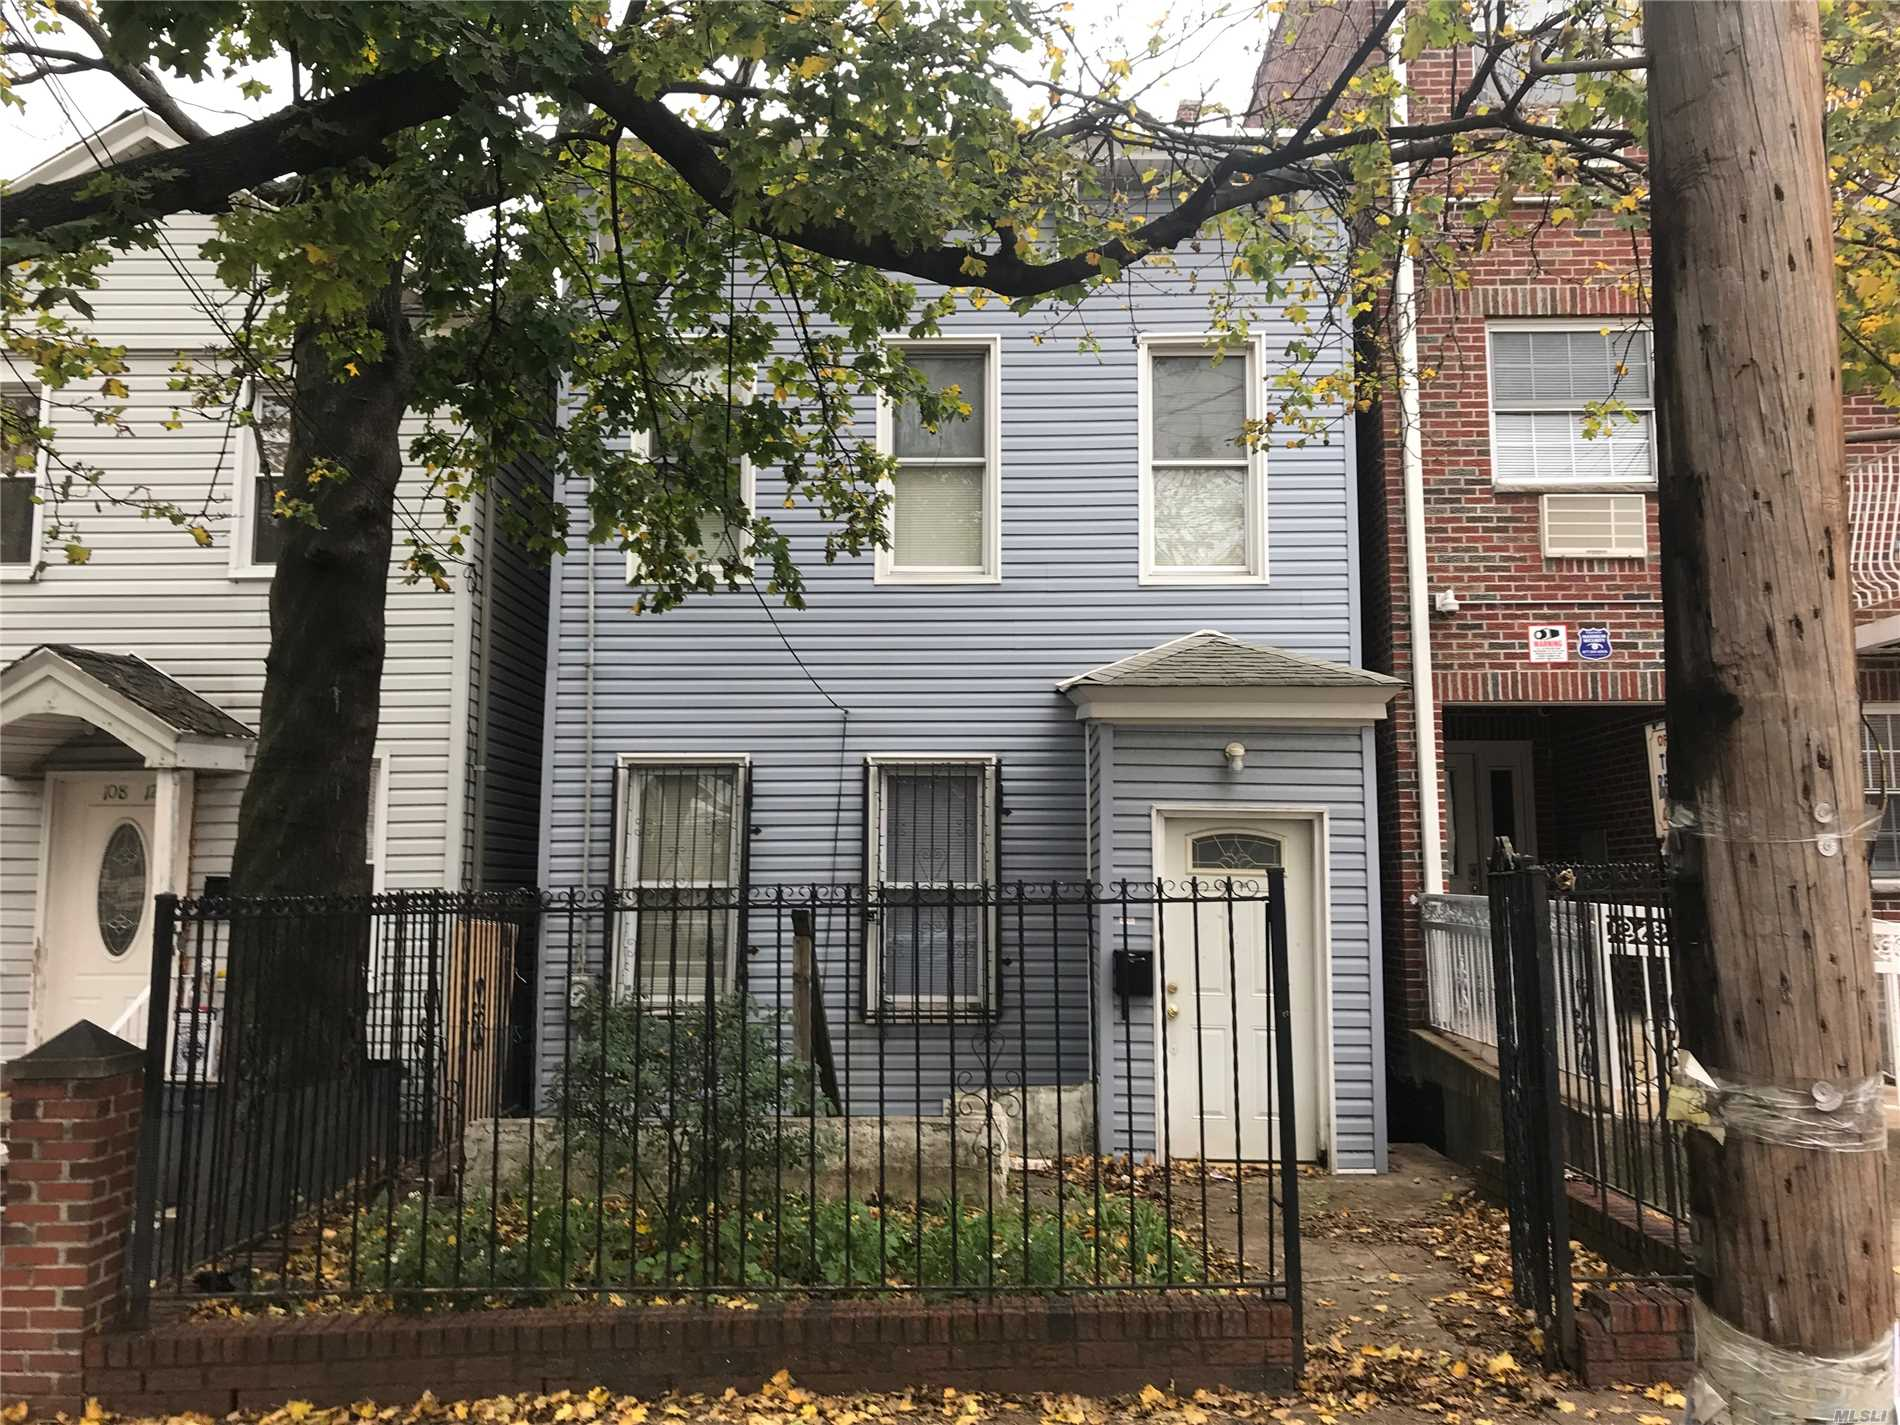 Very Good House. Had A Broken Water Pipe Damage, But Not Too Bad. Was Completely Renovated And I Mean Completely! Fix It Up As A House Or Knock It Down And Build Line To Line, 3.000 Sq. Ft. Two Family.....Check With Architect....Looks Great!!!!